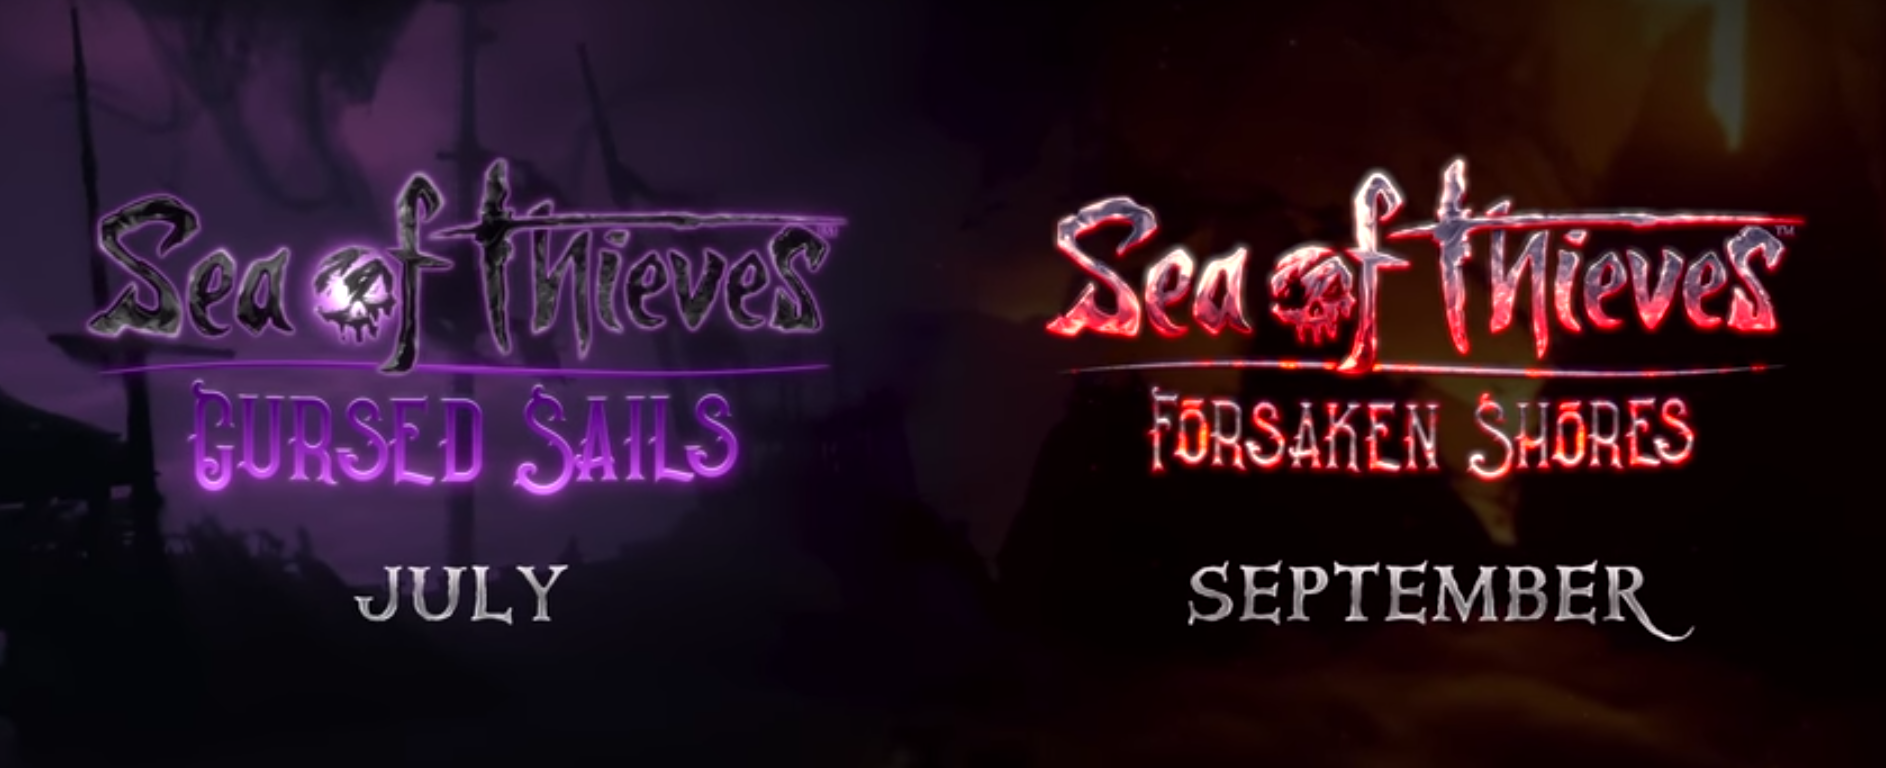 sea-of-thieves-release-dates